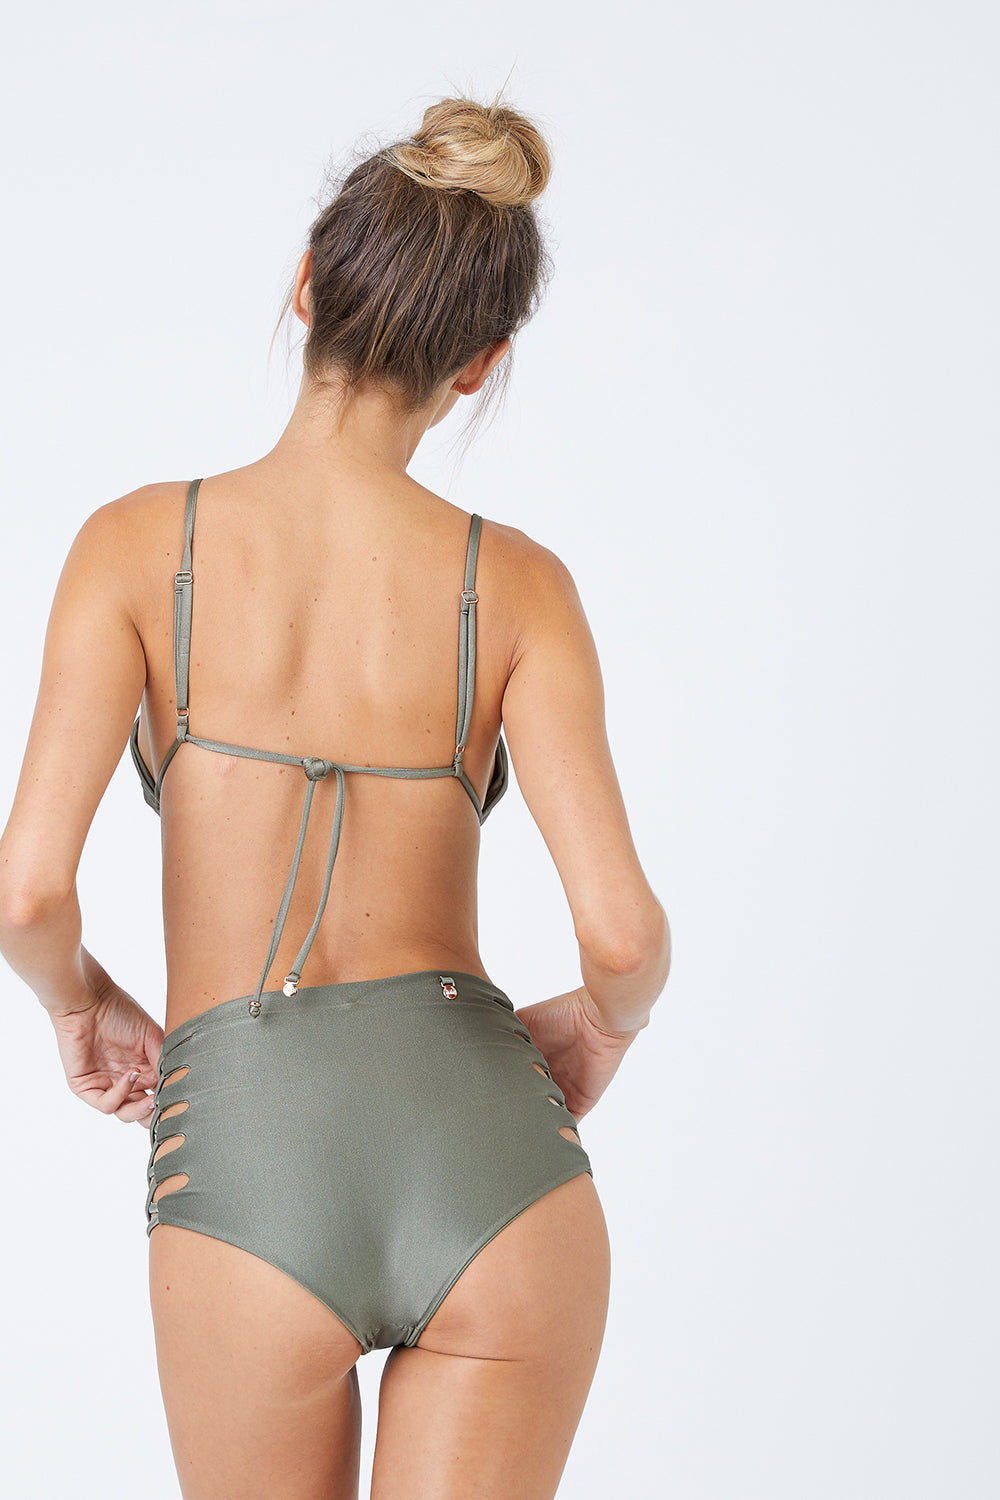 MALAI Lace Up High Waist Bikini Bottom - Sparkly Green Bikini Bottom | Sparkly Green| Malai Malai Lace Up High Waist Bikini Bottom - Sparkly Green Retro style high-waisted bikini bottom in shiny autumn green color. Intricate corset-inspired criss-cross strap detail at sides adds a sexy touch Back View